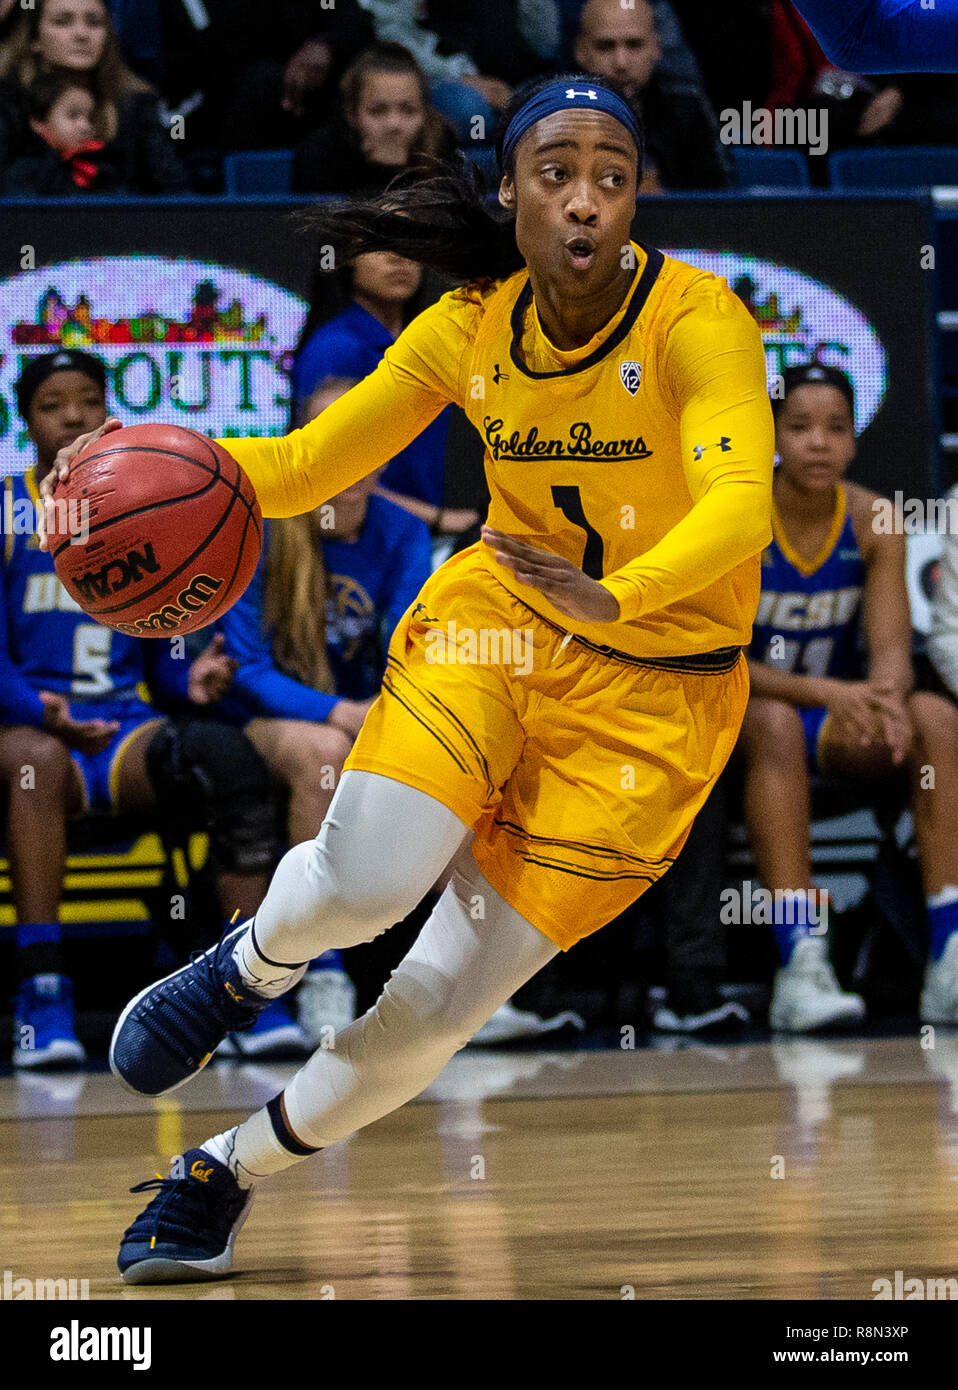 Hass Pavilion Berkeley Calif, USA. 16th Dec, 2018. U.S.A. California guard Asha Thomas (1) scored 7 points and 1 assist drives to the basket during the NCAA Women's Basketball game between UC Santa Barbara Gauchos and the California Golden Bears 69-84 win at Hass Pavilion Berkeley Calif. Thurman James/CSM/Alamy Live News - Stock Image